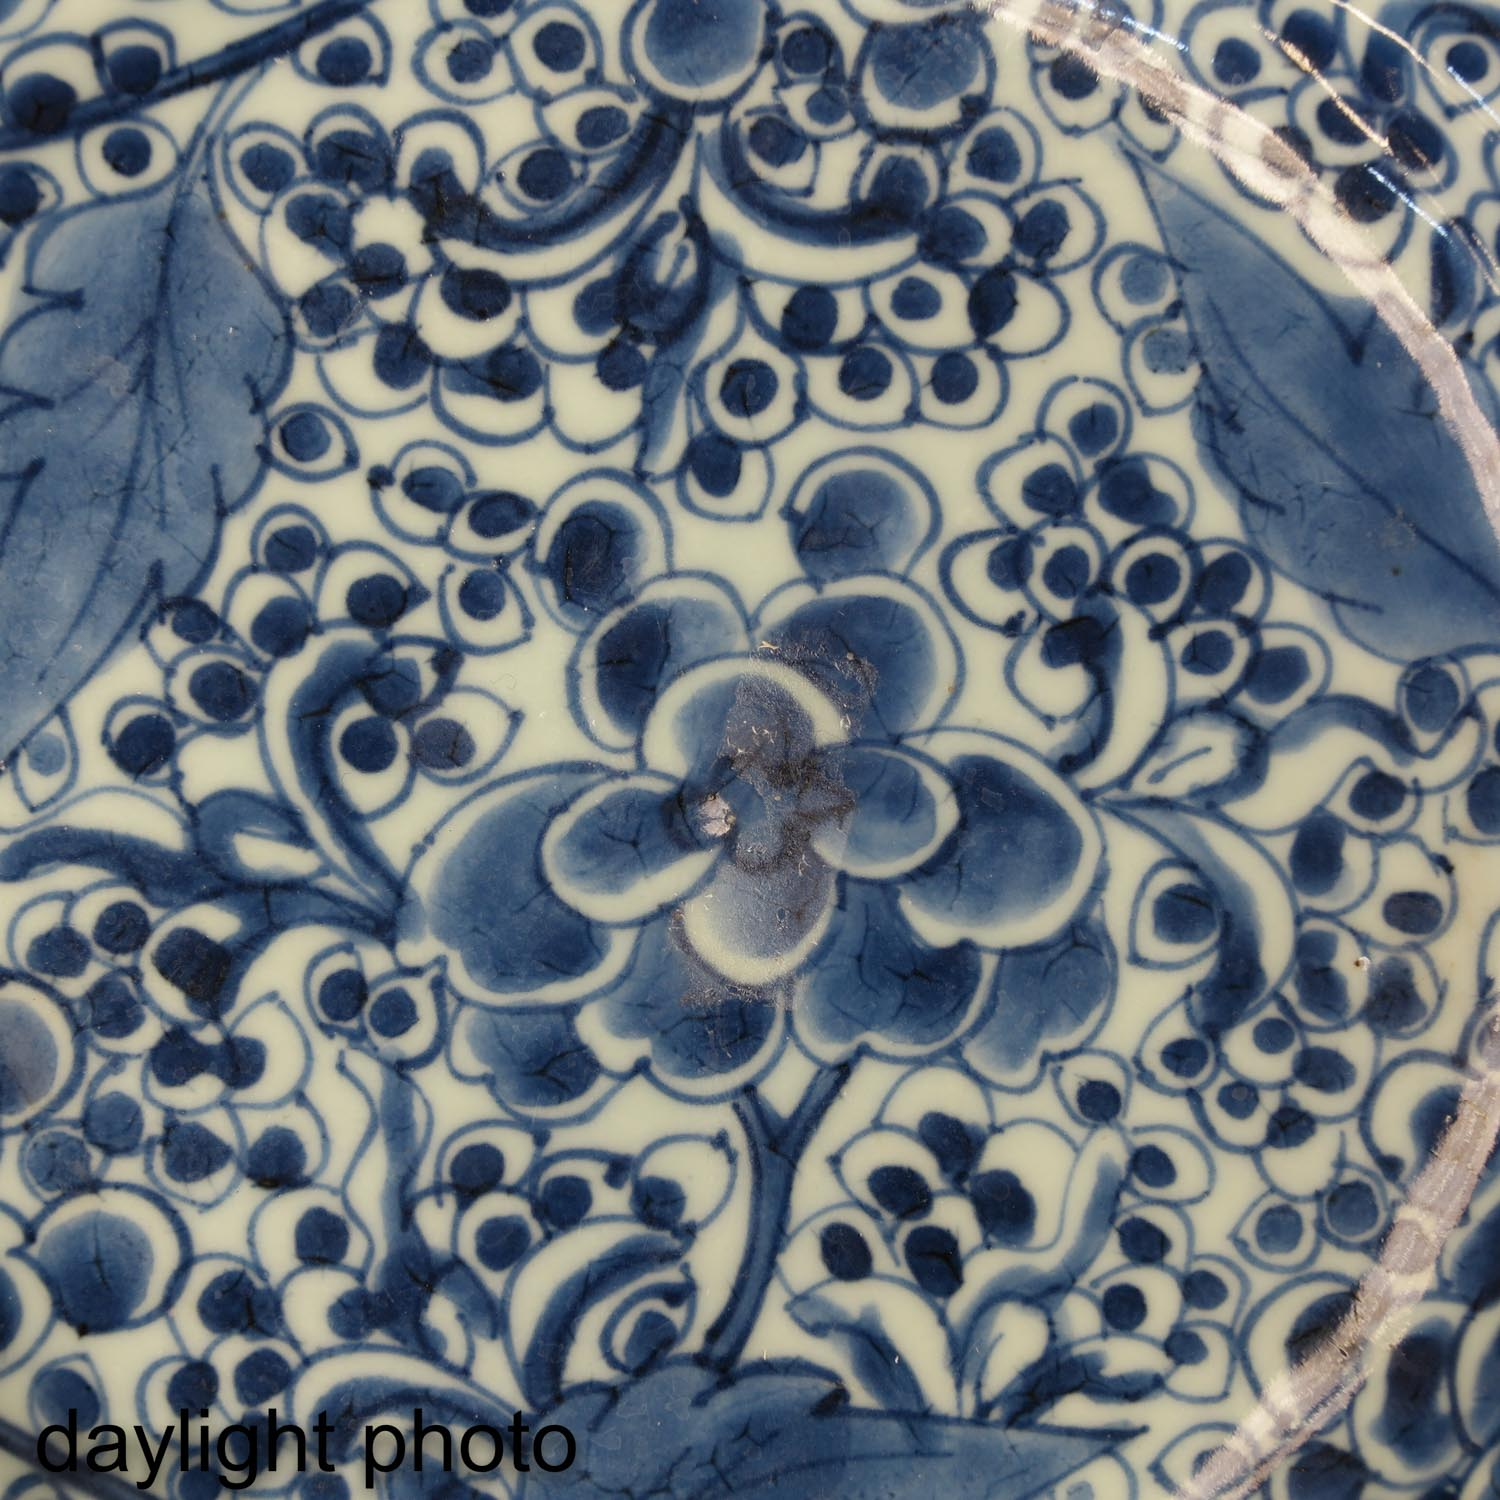 A Series of 5 Blue and White Plates - Image 9 of 10